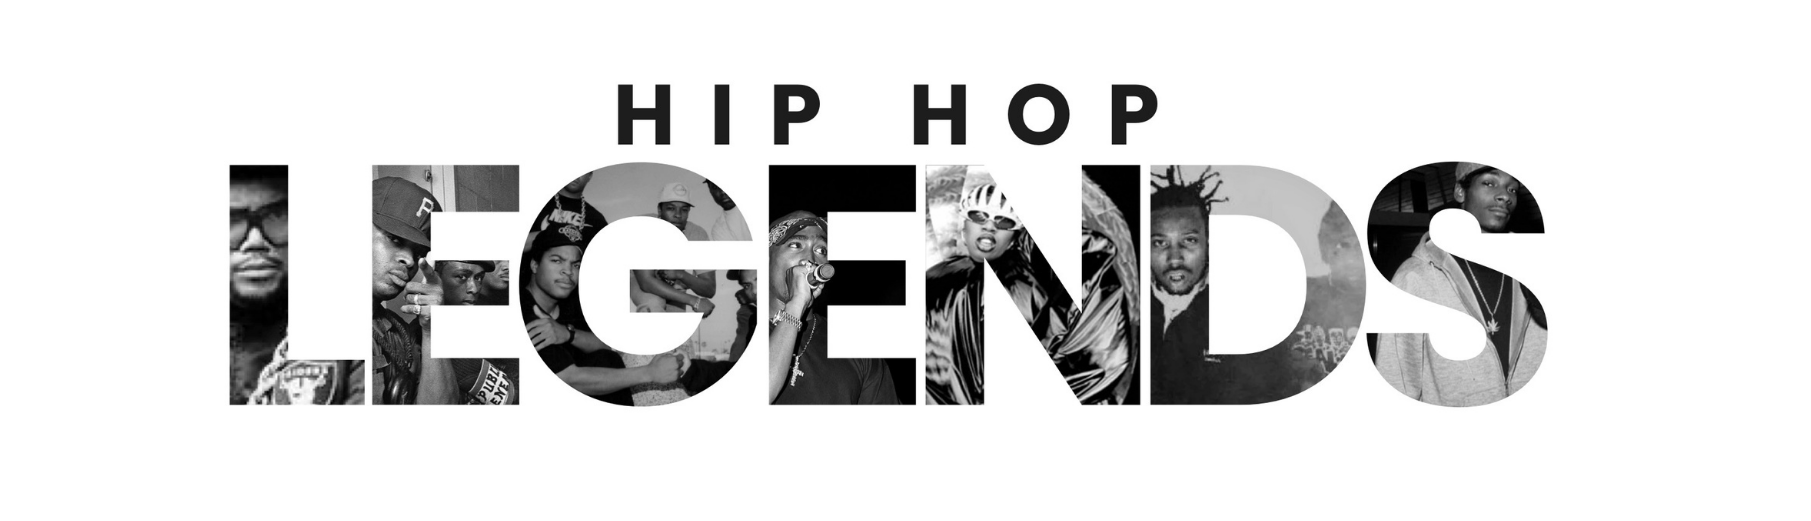 #HipHopLegends Graphic